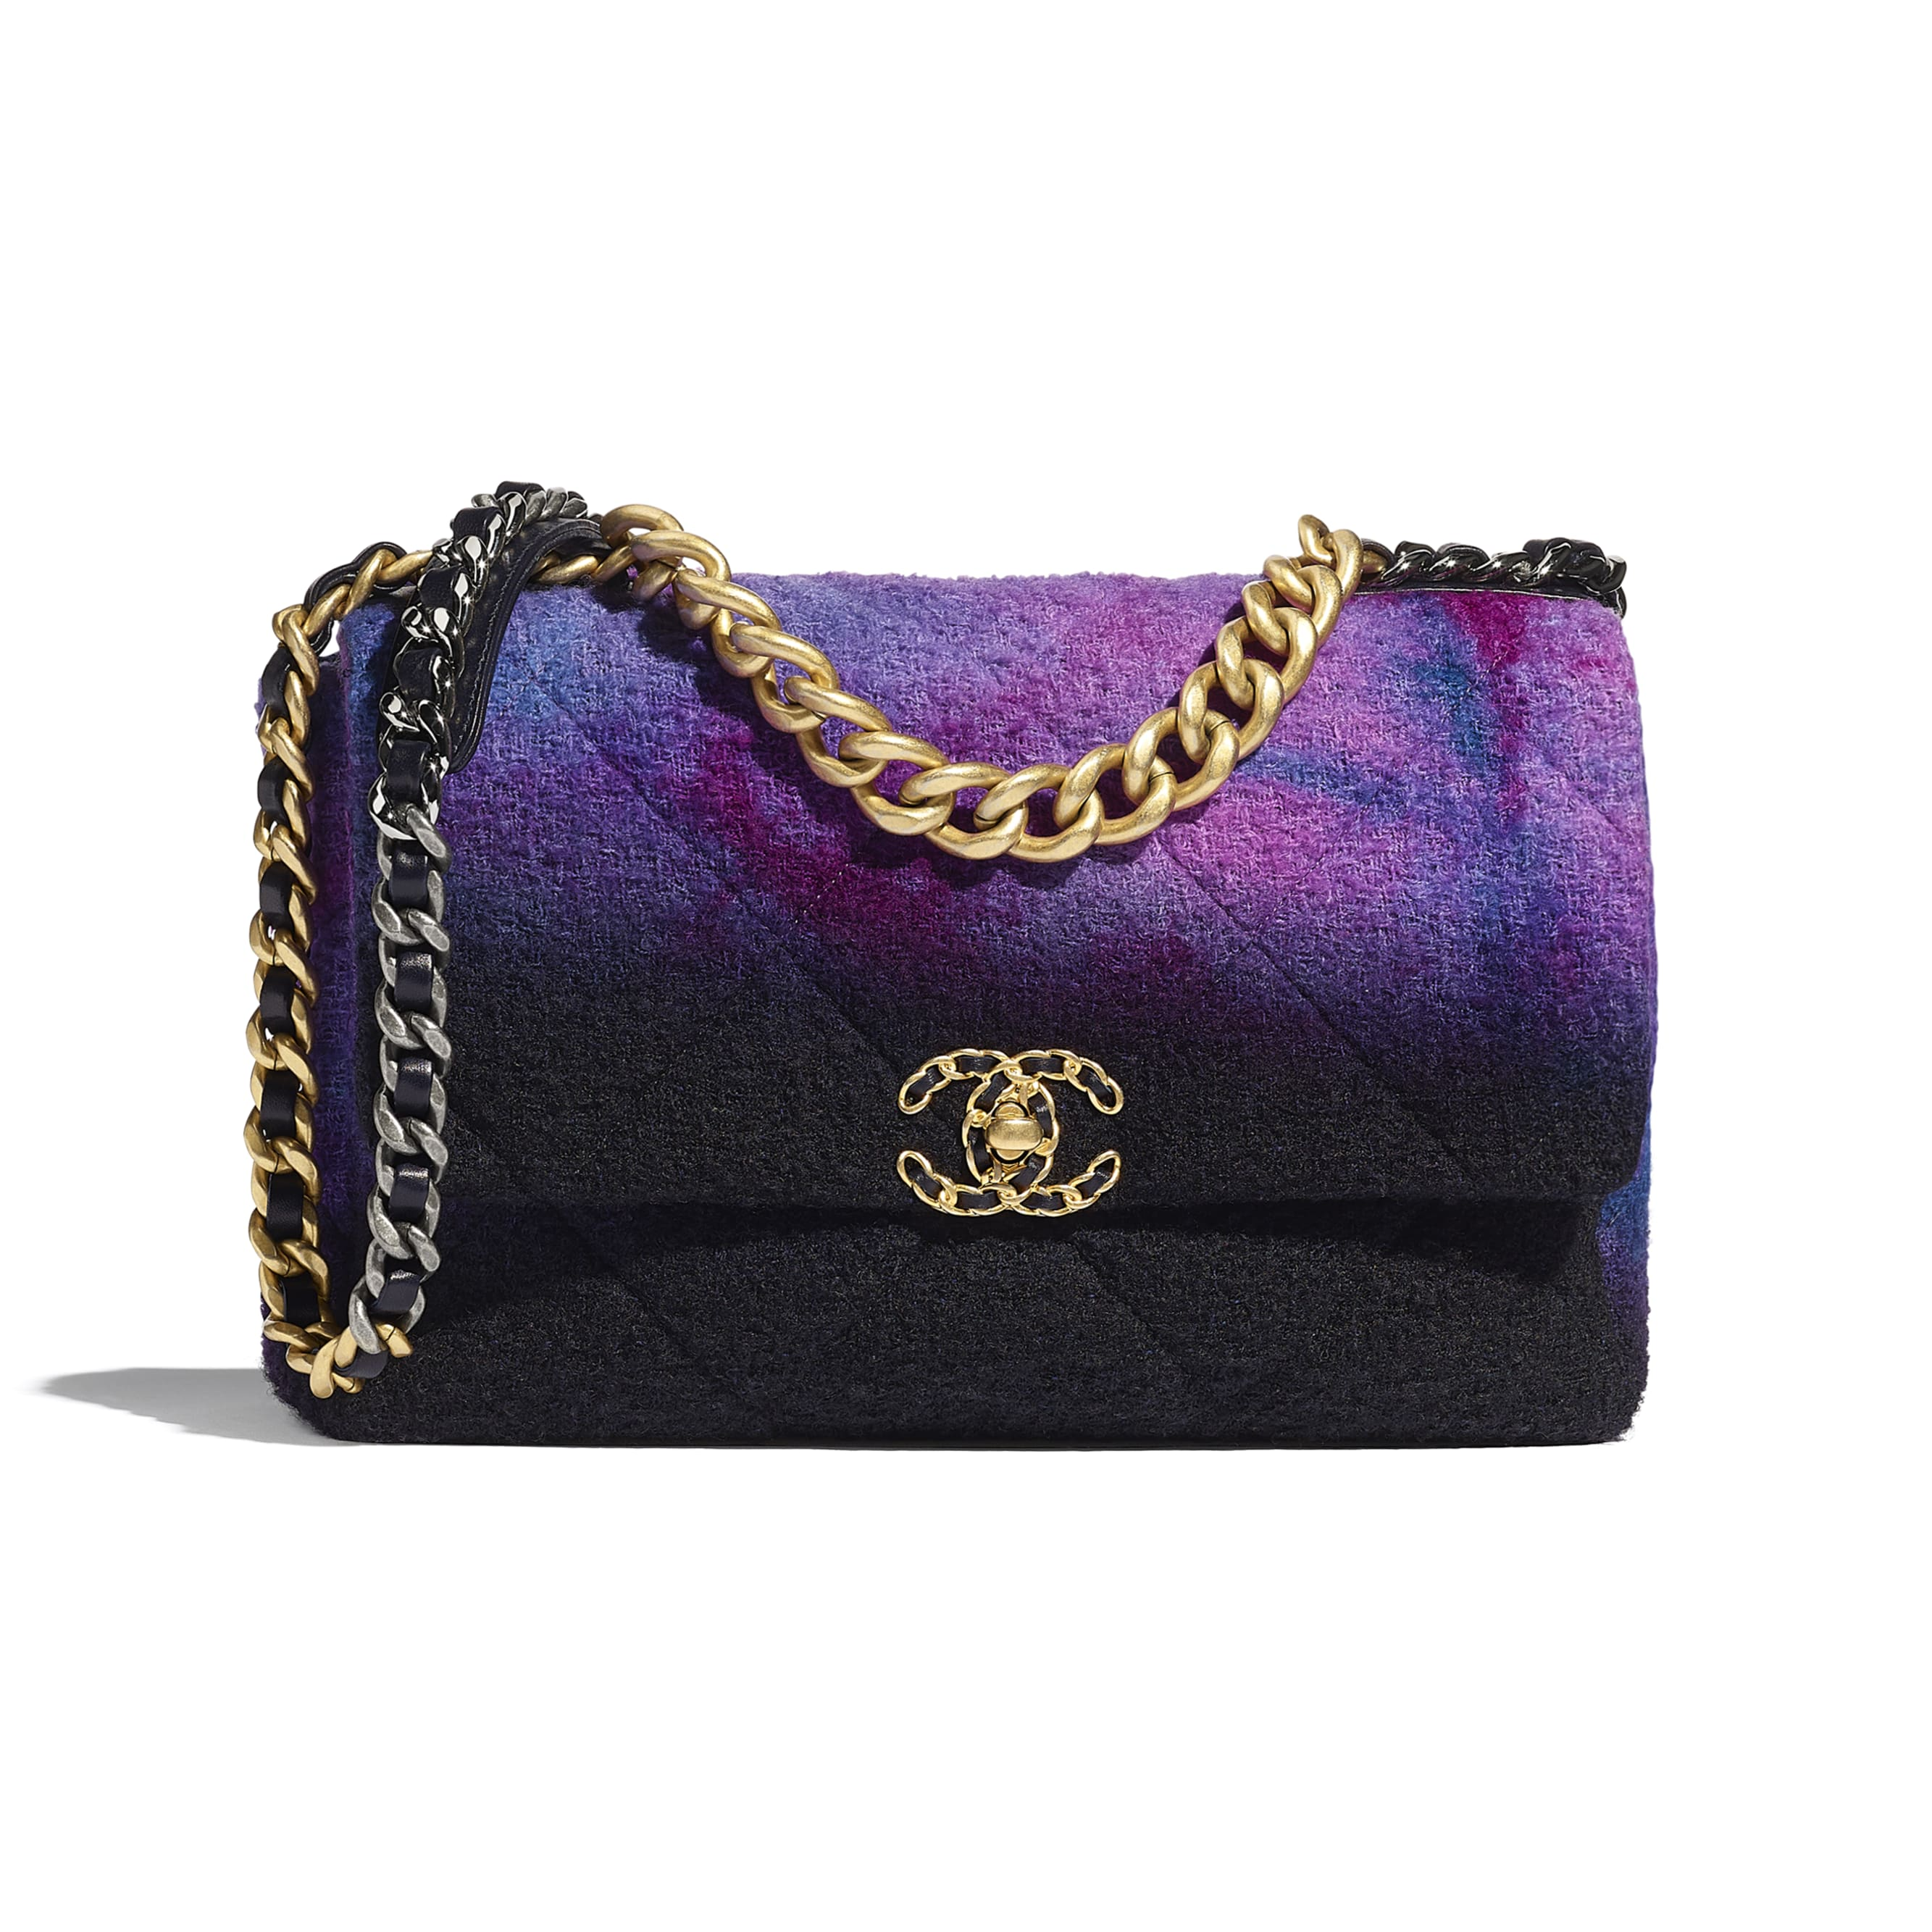 CHANEL 19 Large Flap Bag - Purple, Black & Blue - Wool Tweed, Gold-Tone, Silver-Tone & Ruthenium-Finish Metal - CHANEL - Default view - see standard sized version